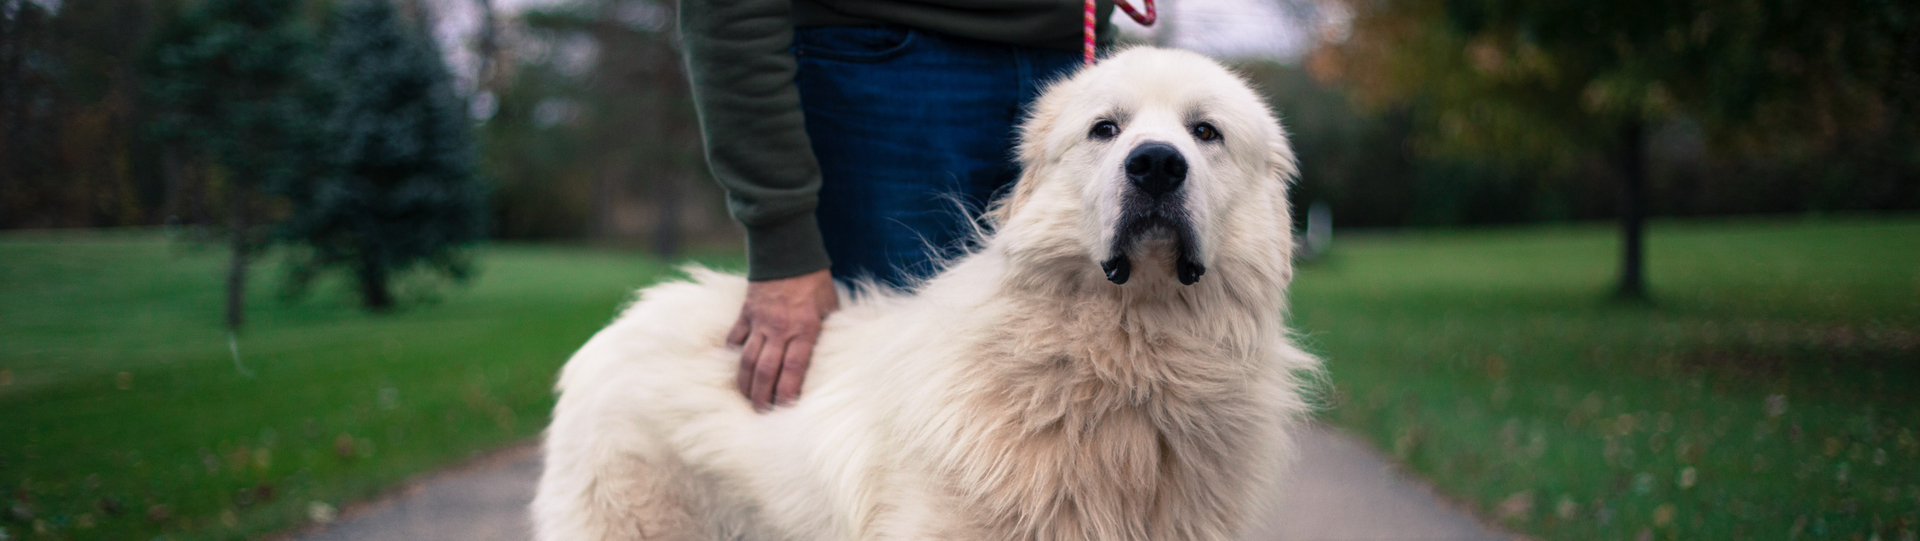 A Great Pyrenees with their owner.